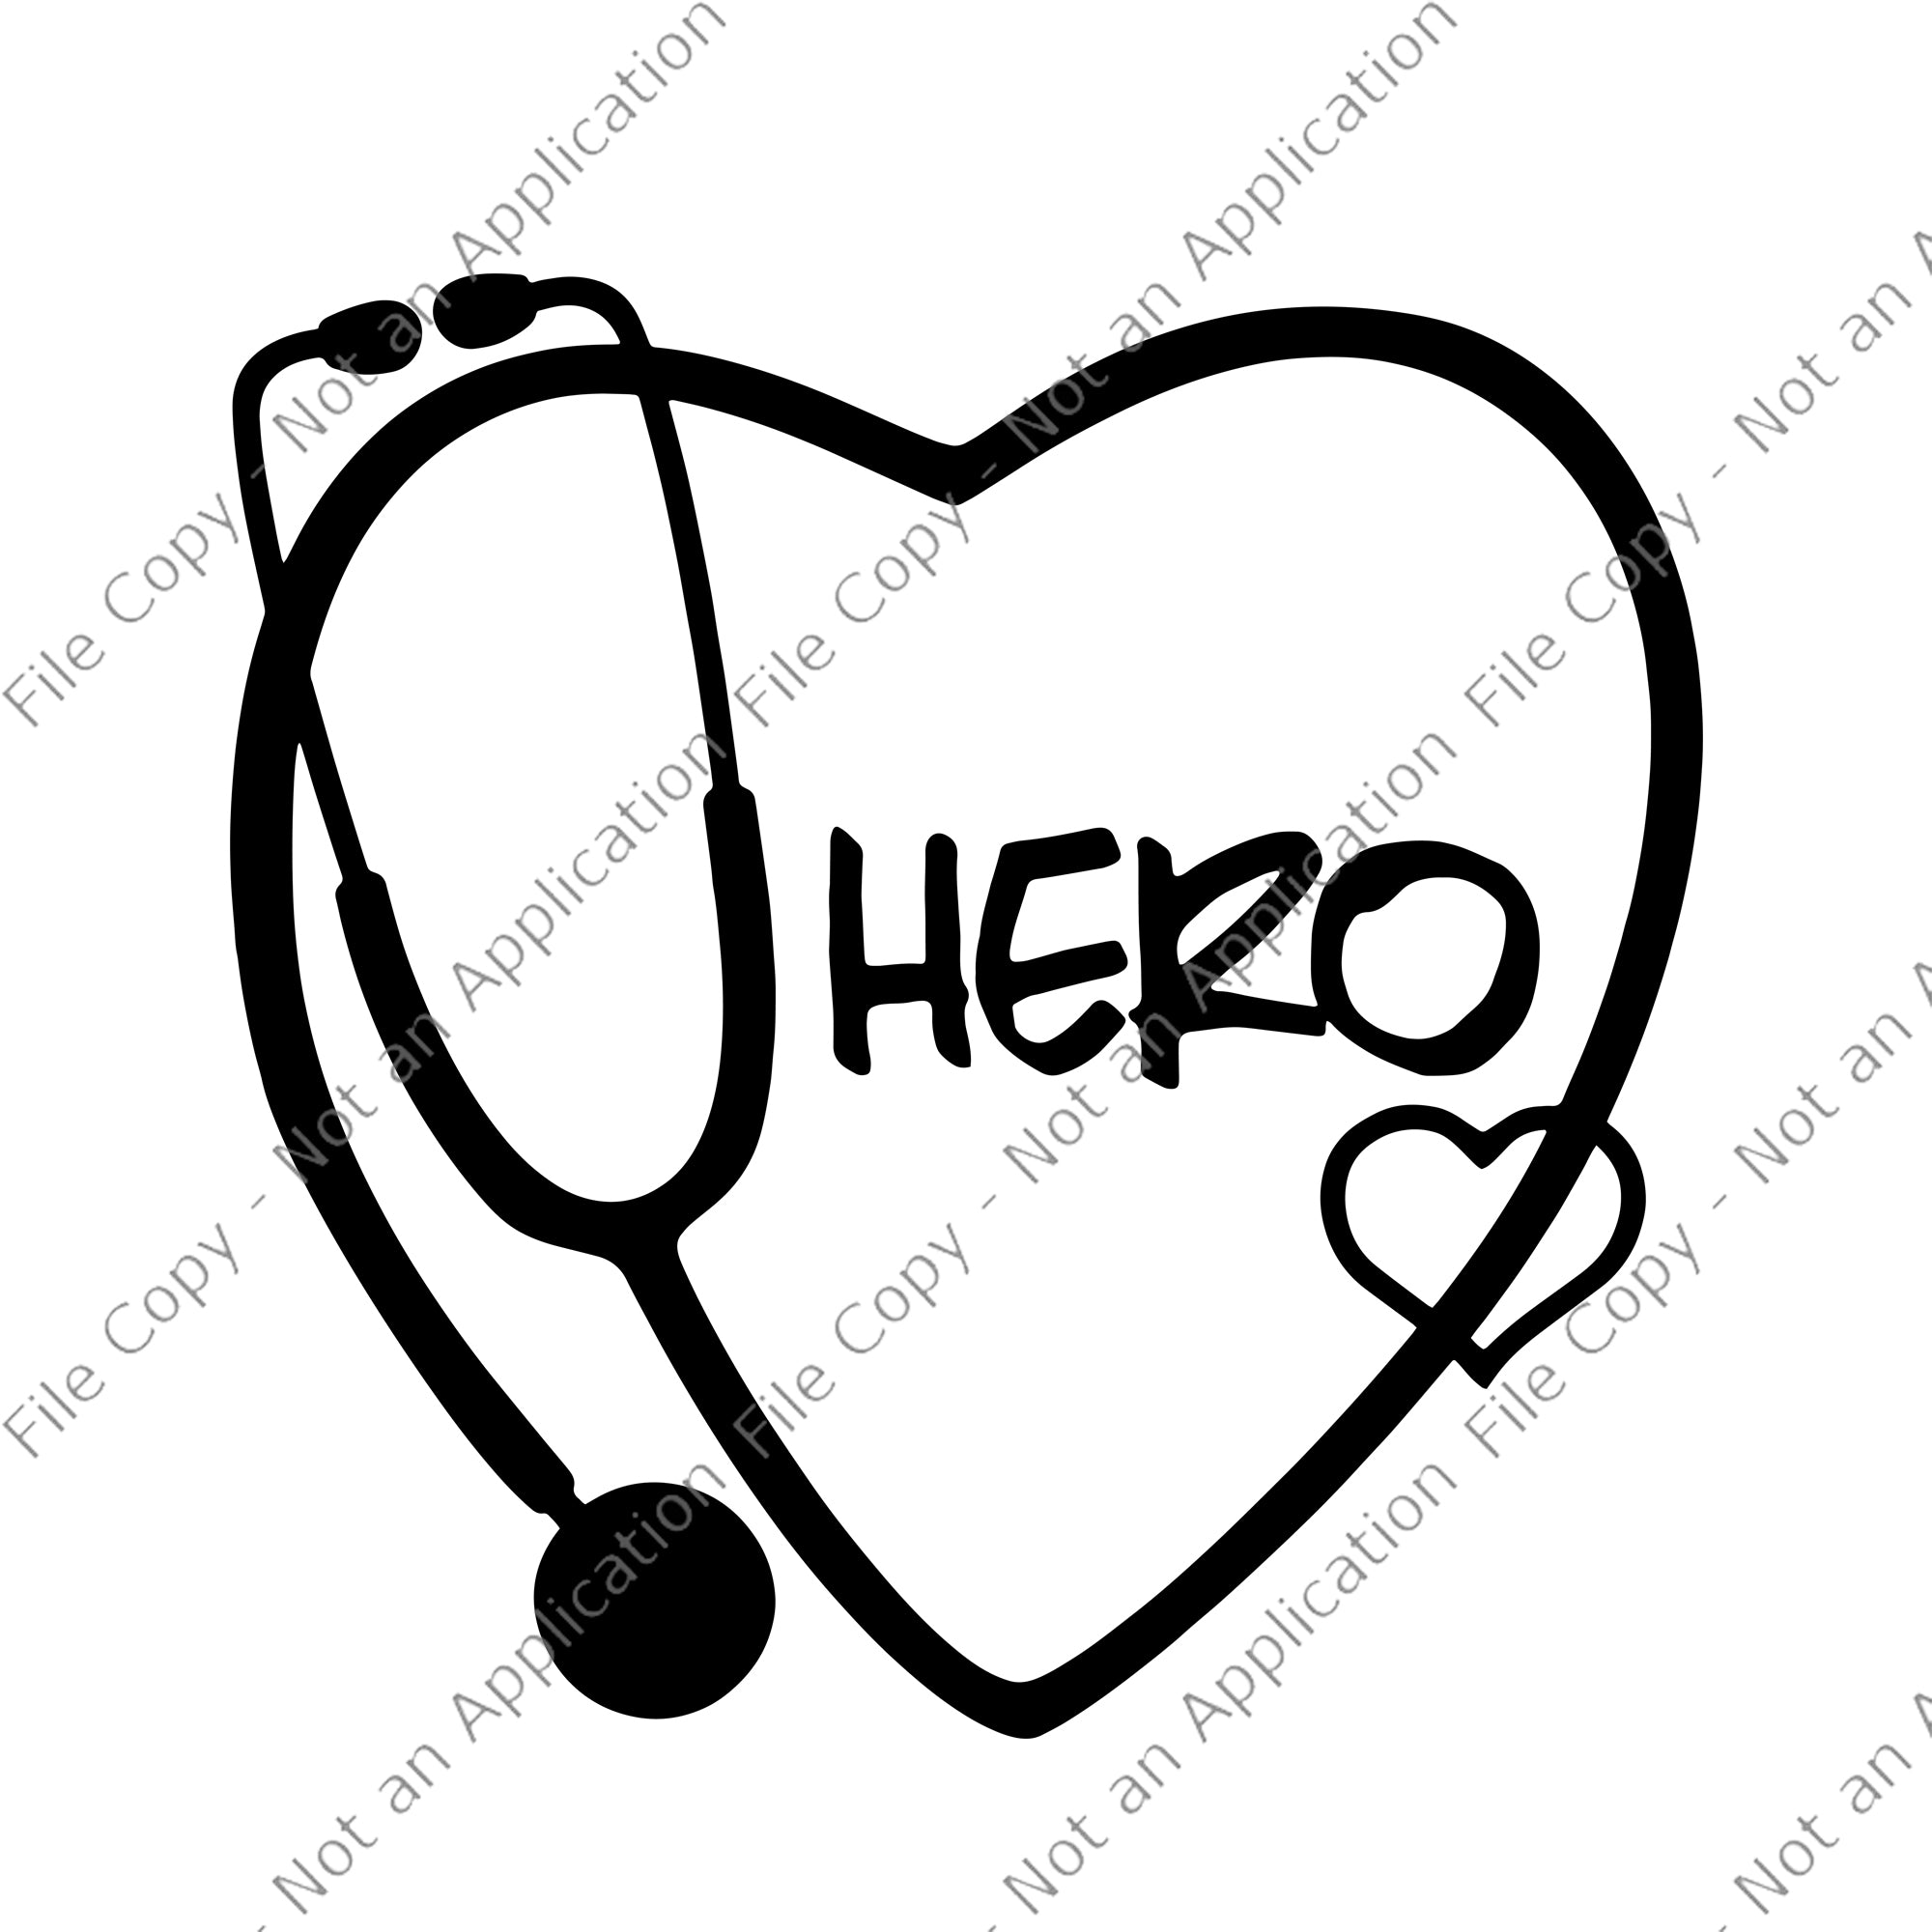 Nurse Hero Svg, Nurse Hero, Nurse Hero PNG, Nurse Hero design, nurse 2020 svg, nurse svg, nurse 2020